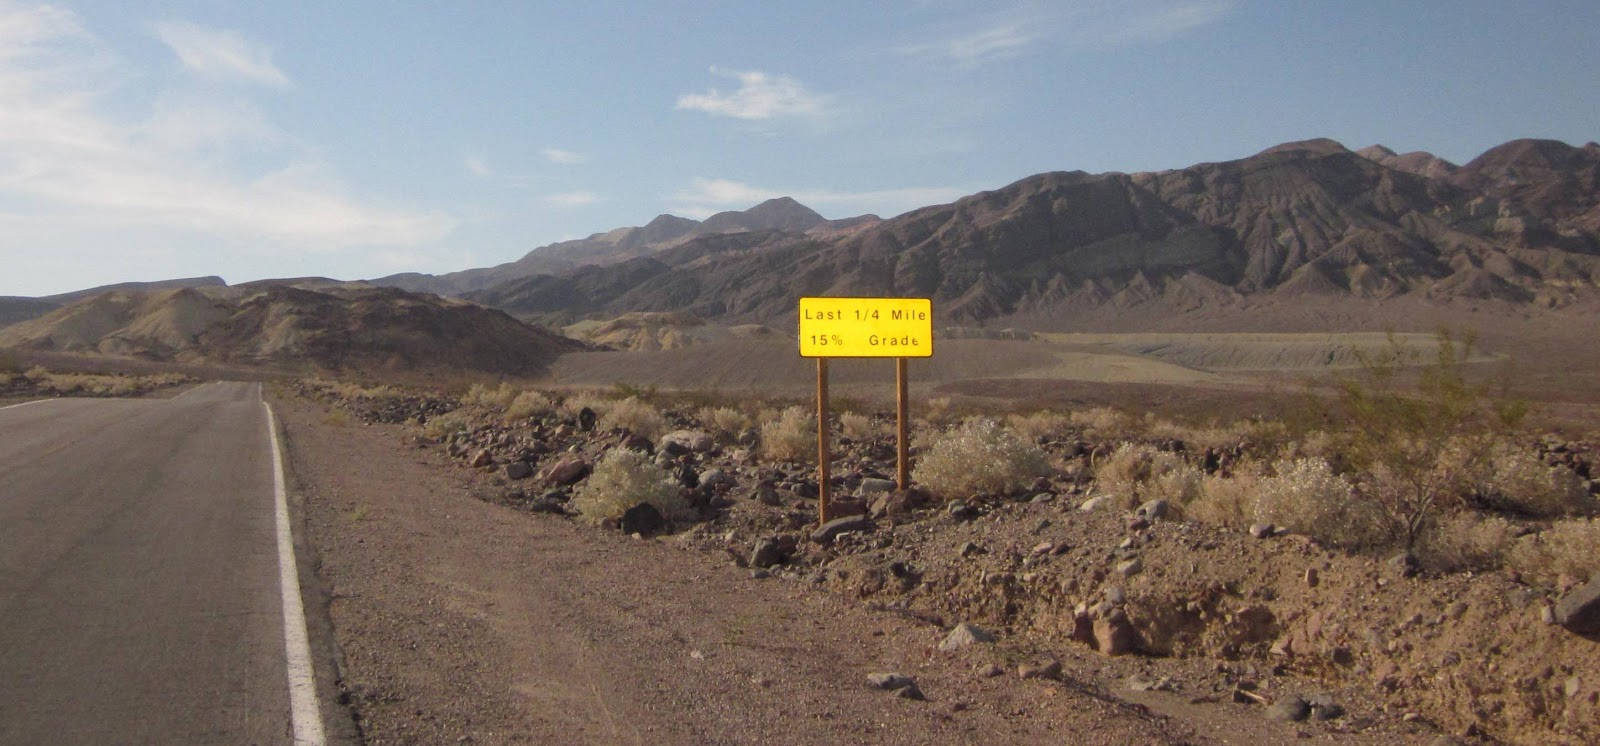 Cycling Dantes View Death Valley - Last 1/4 Mile 15% Grade sign